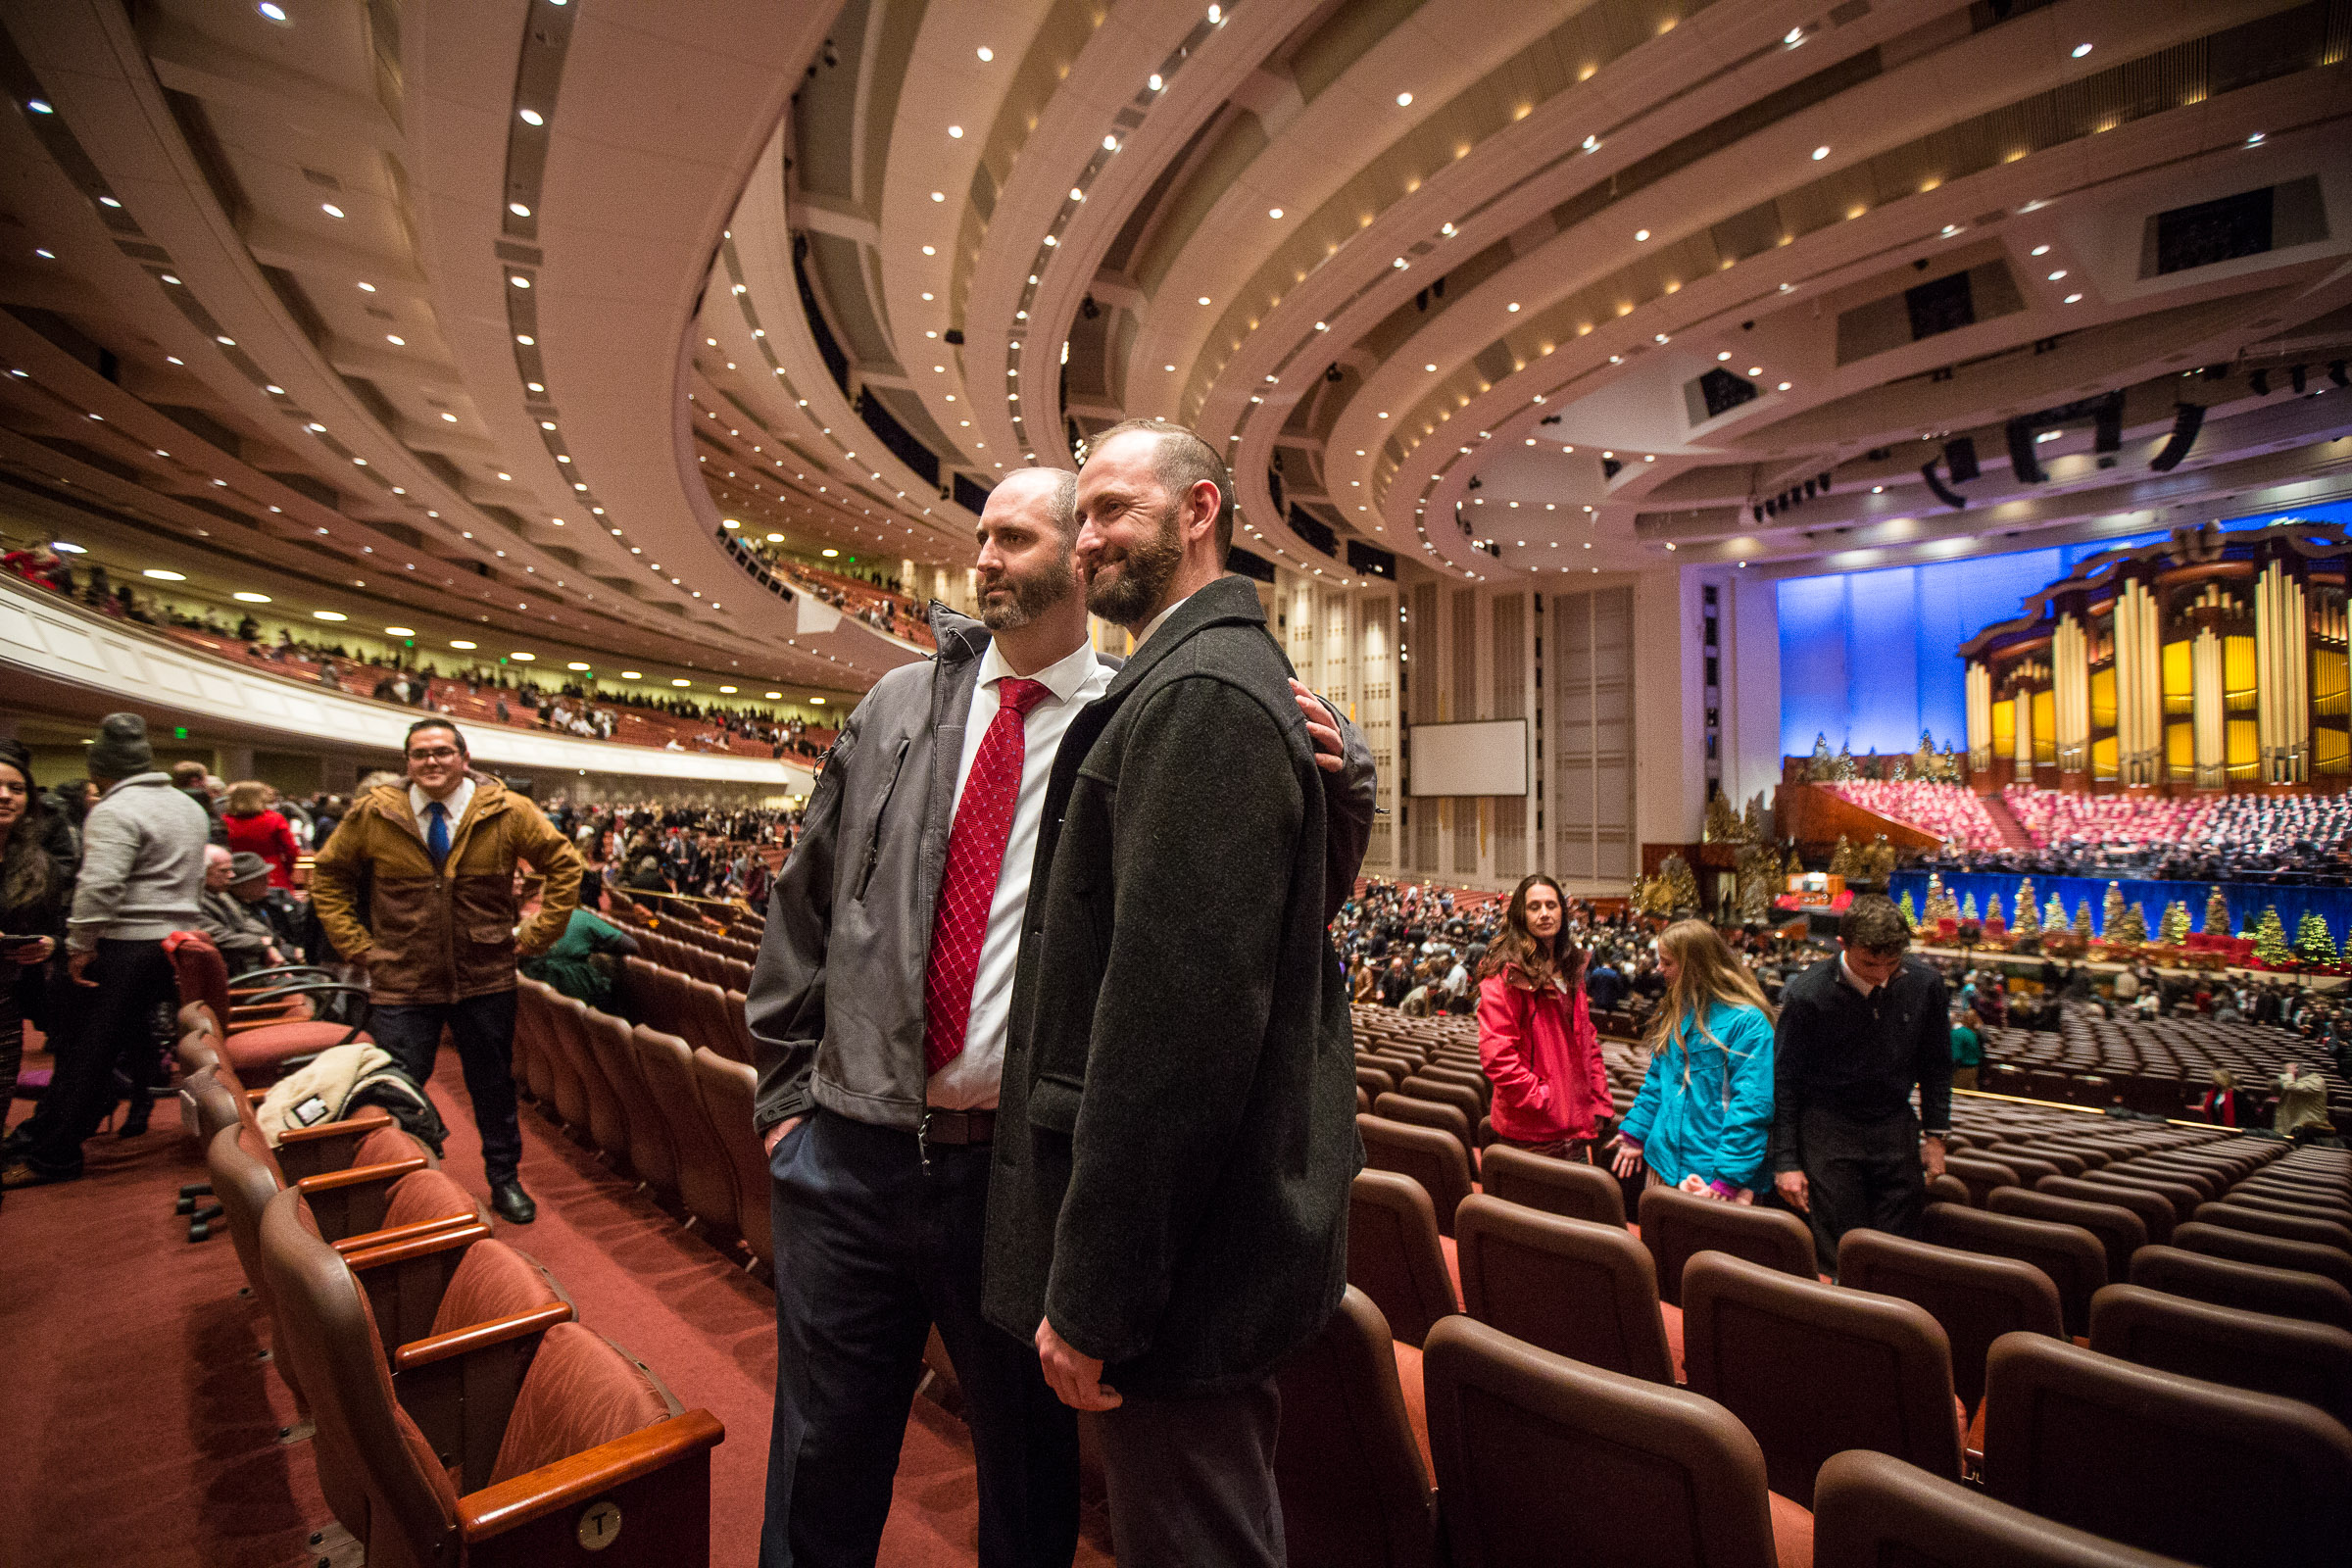 Derek Lemon, left, and Patrick Lemon get their picture taken after the First Presidency's Christmas Devotional in Conference Center in Salt Lake City on Sunday, Dec. 2, 2018.